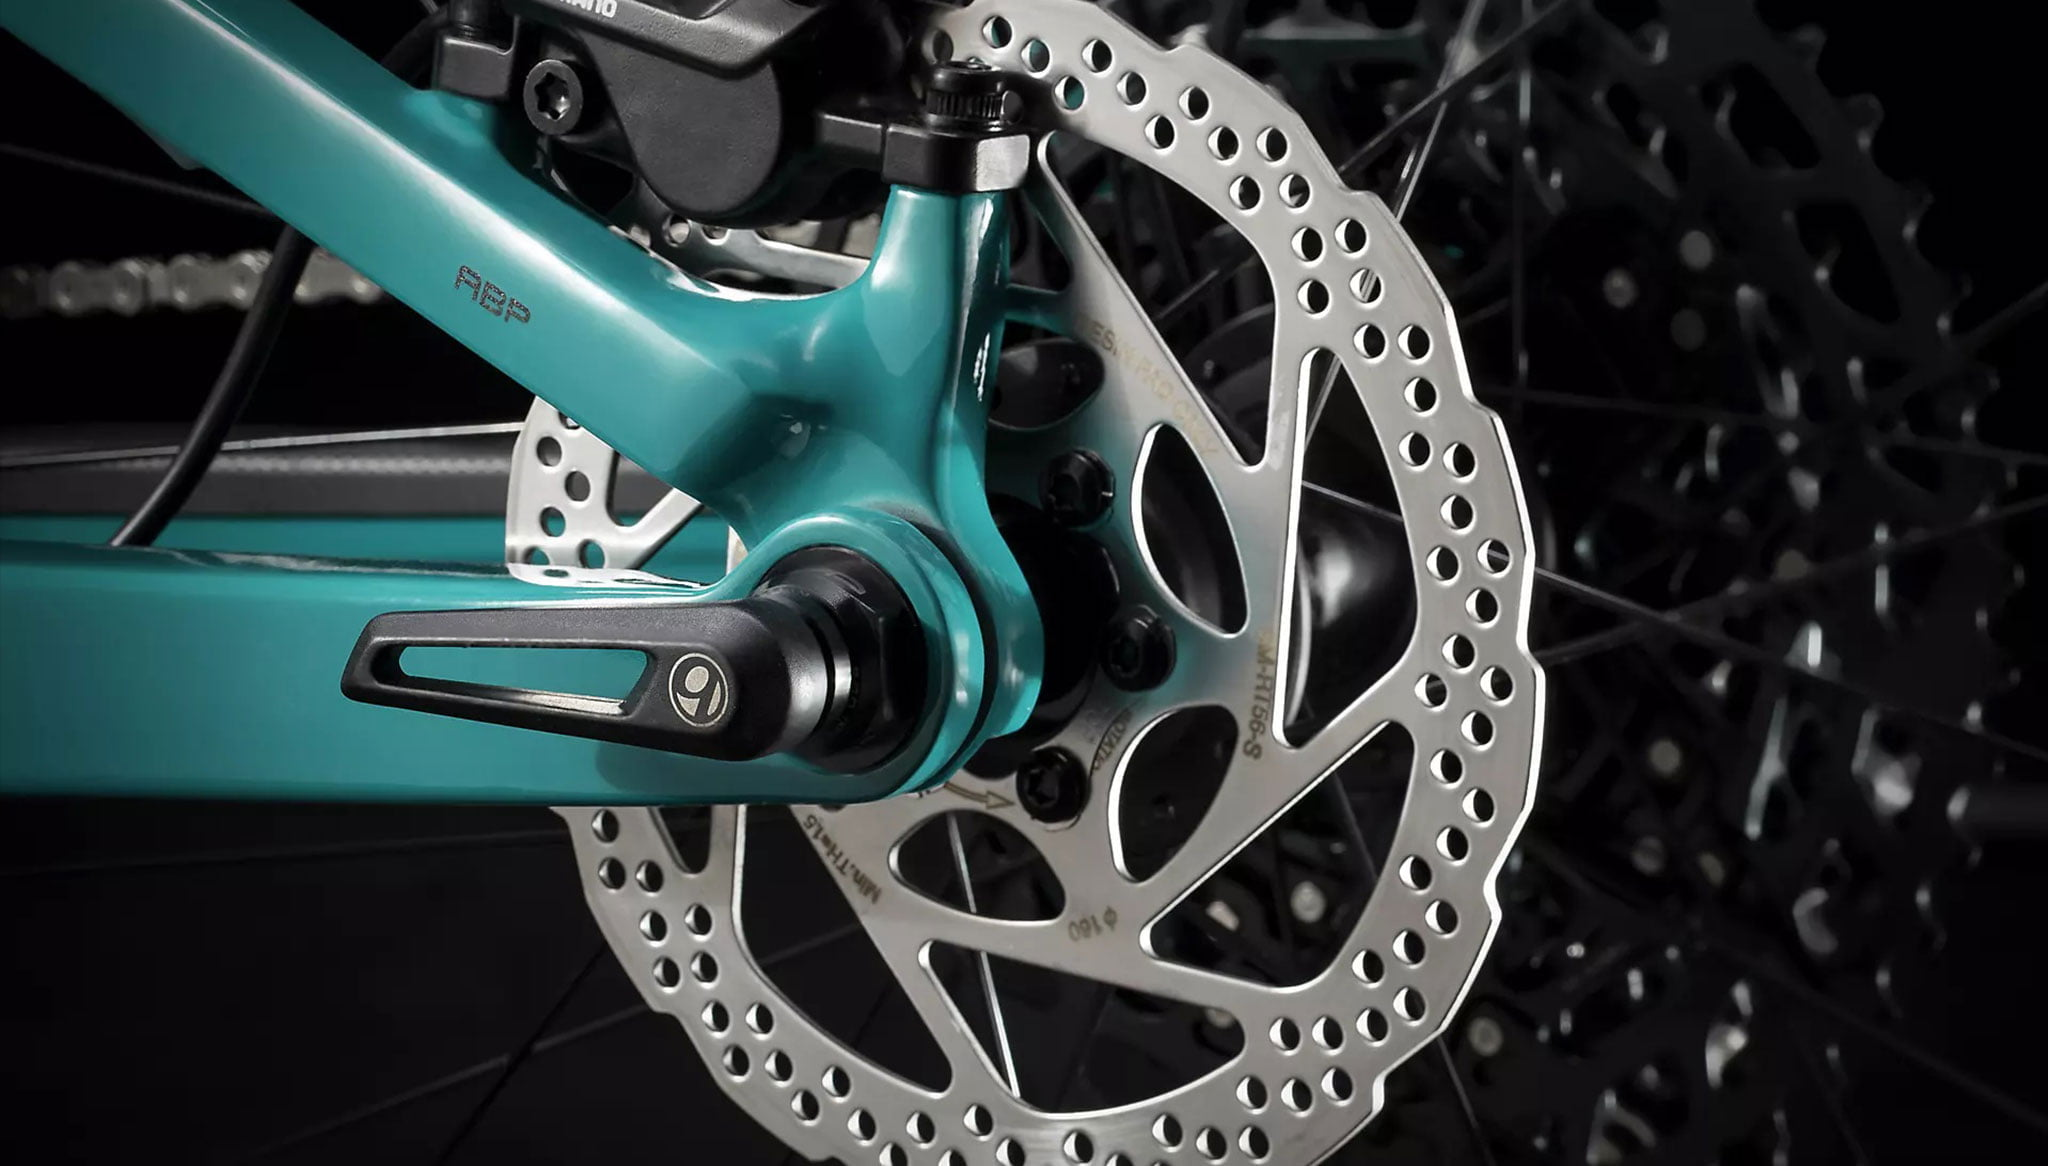 Detail of the Top Fuel 9.7 carbon bike - Extrem Cicles